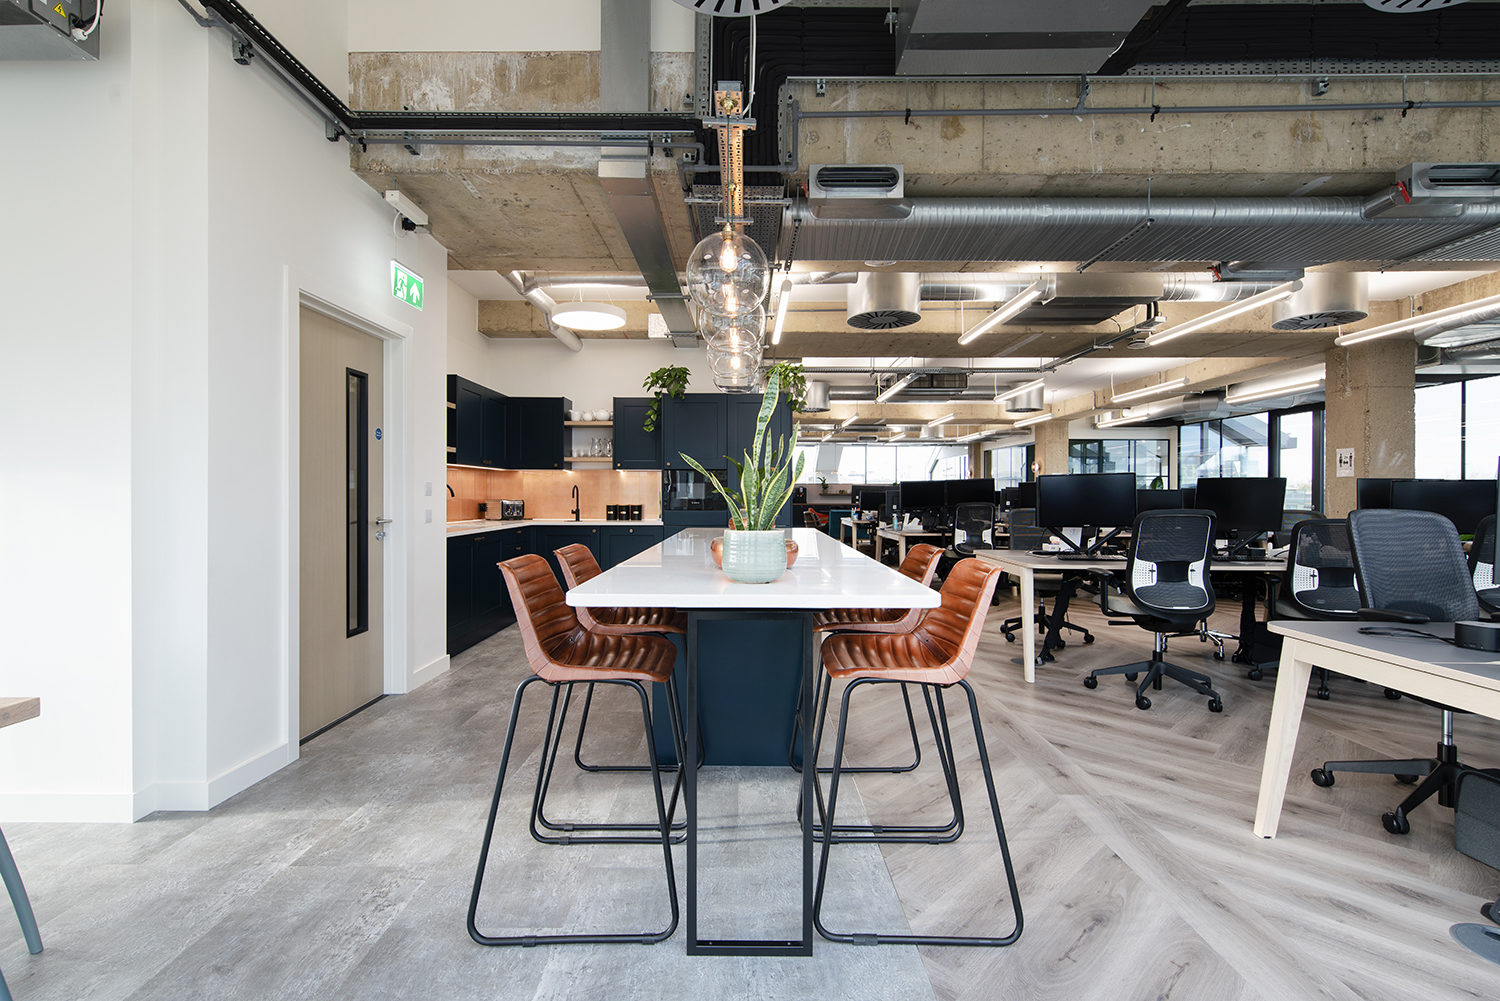 Lovell office breakout area fit out